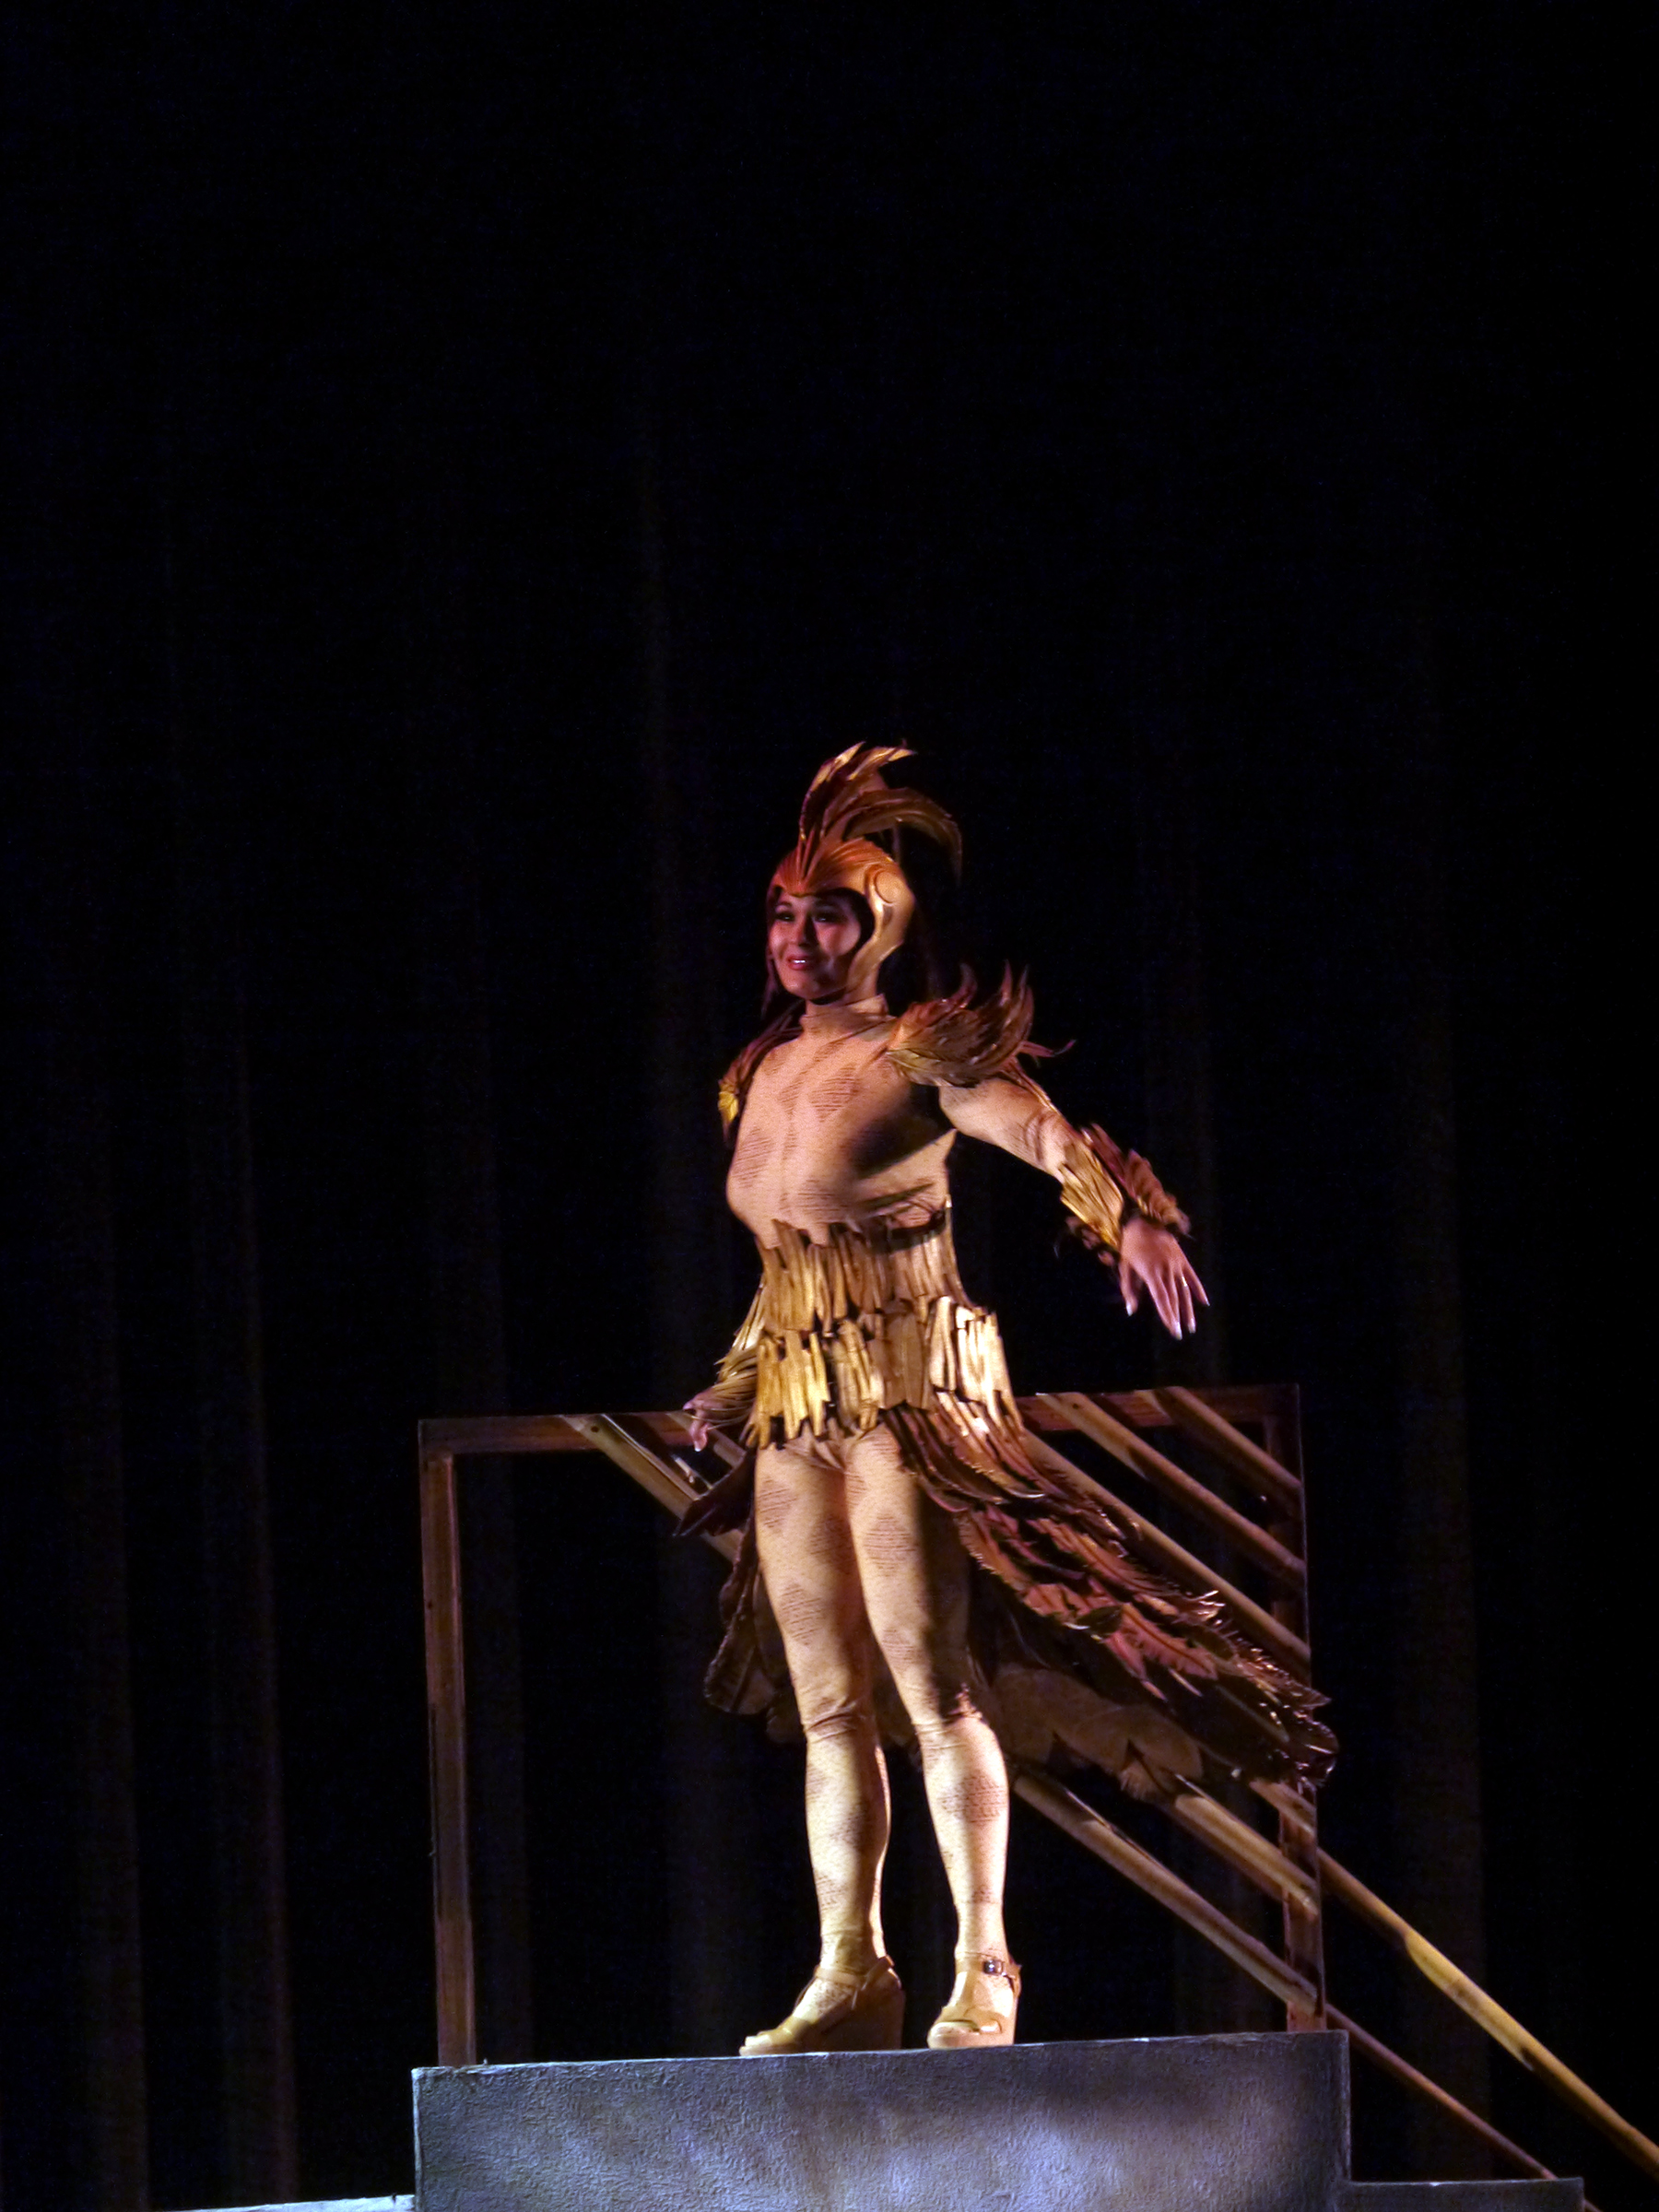 For her role as the Singing Adarna, Gia goes back to her classical roots. Photo by Giselle Kasilag